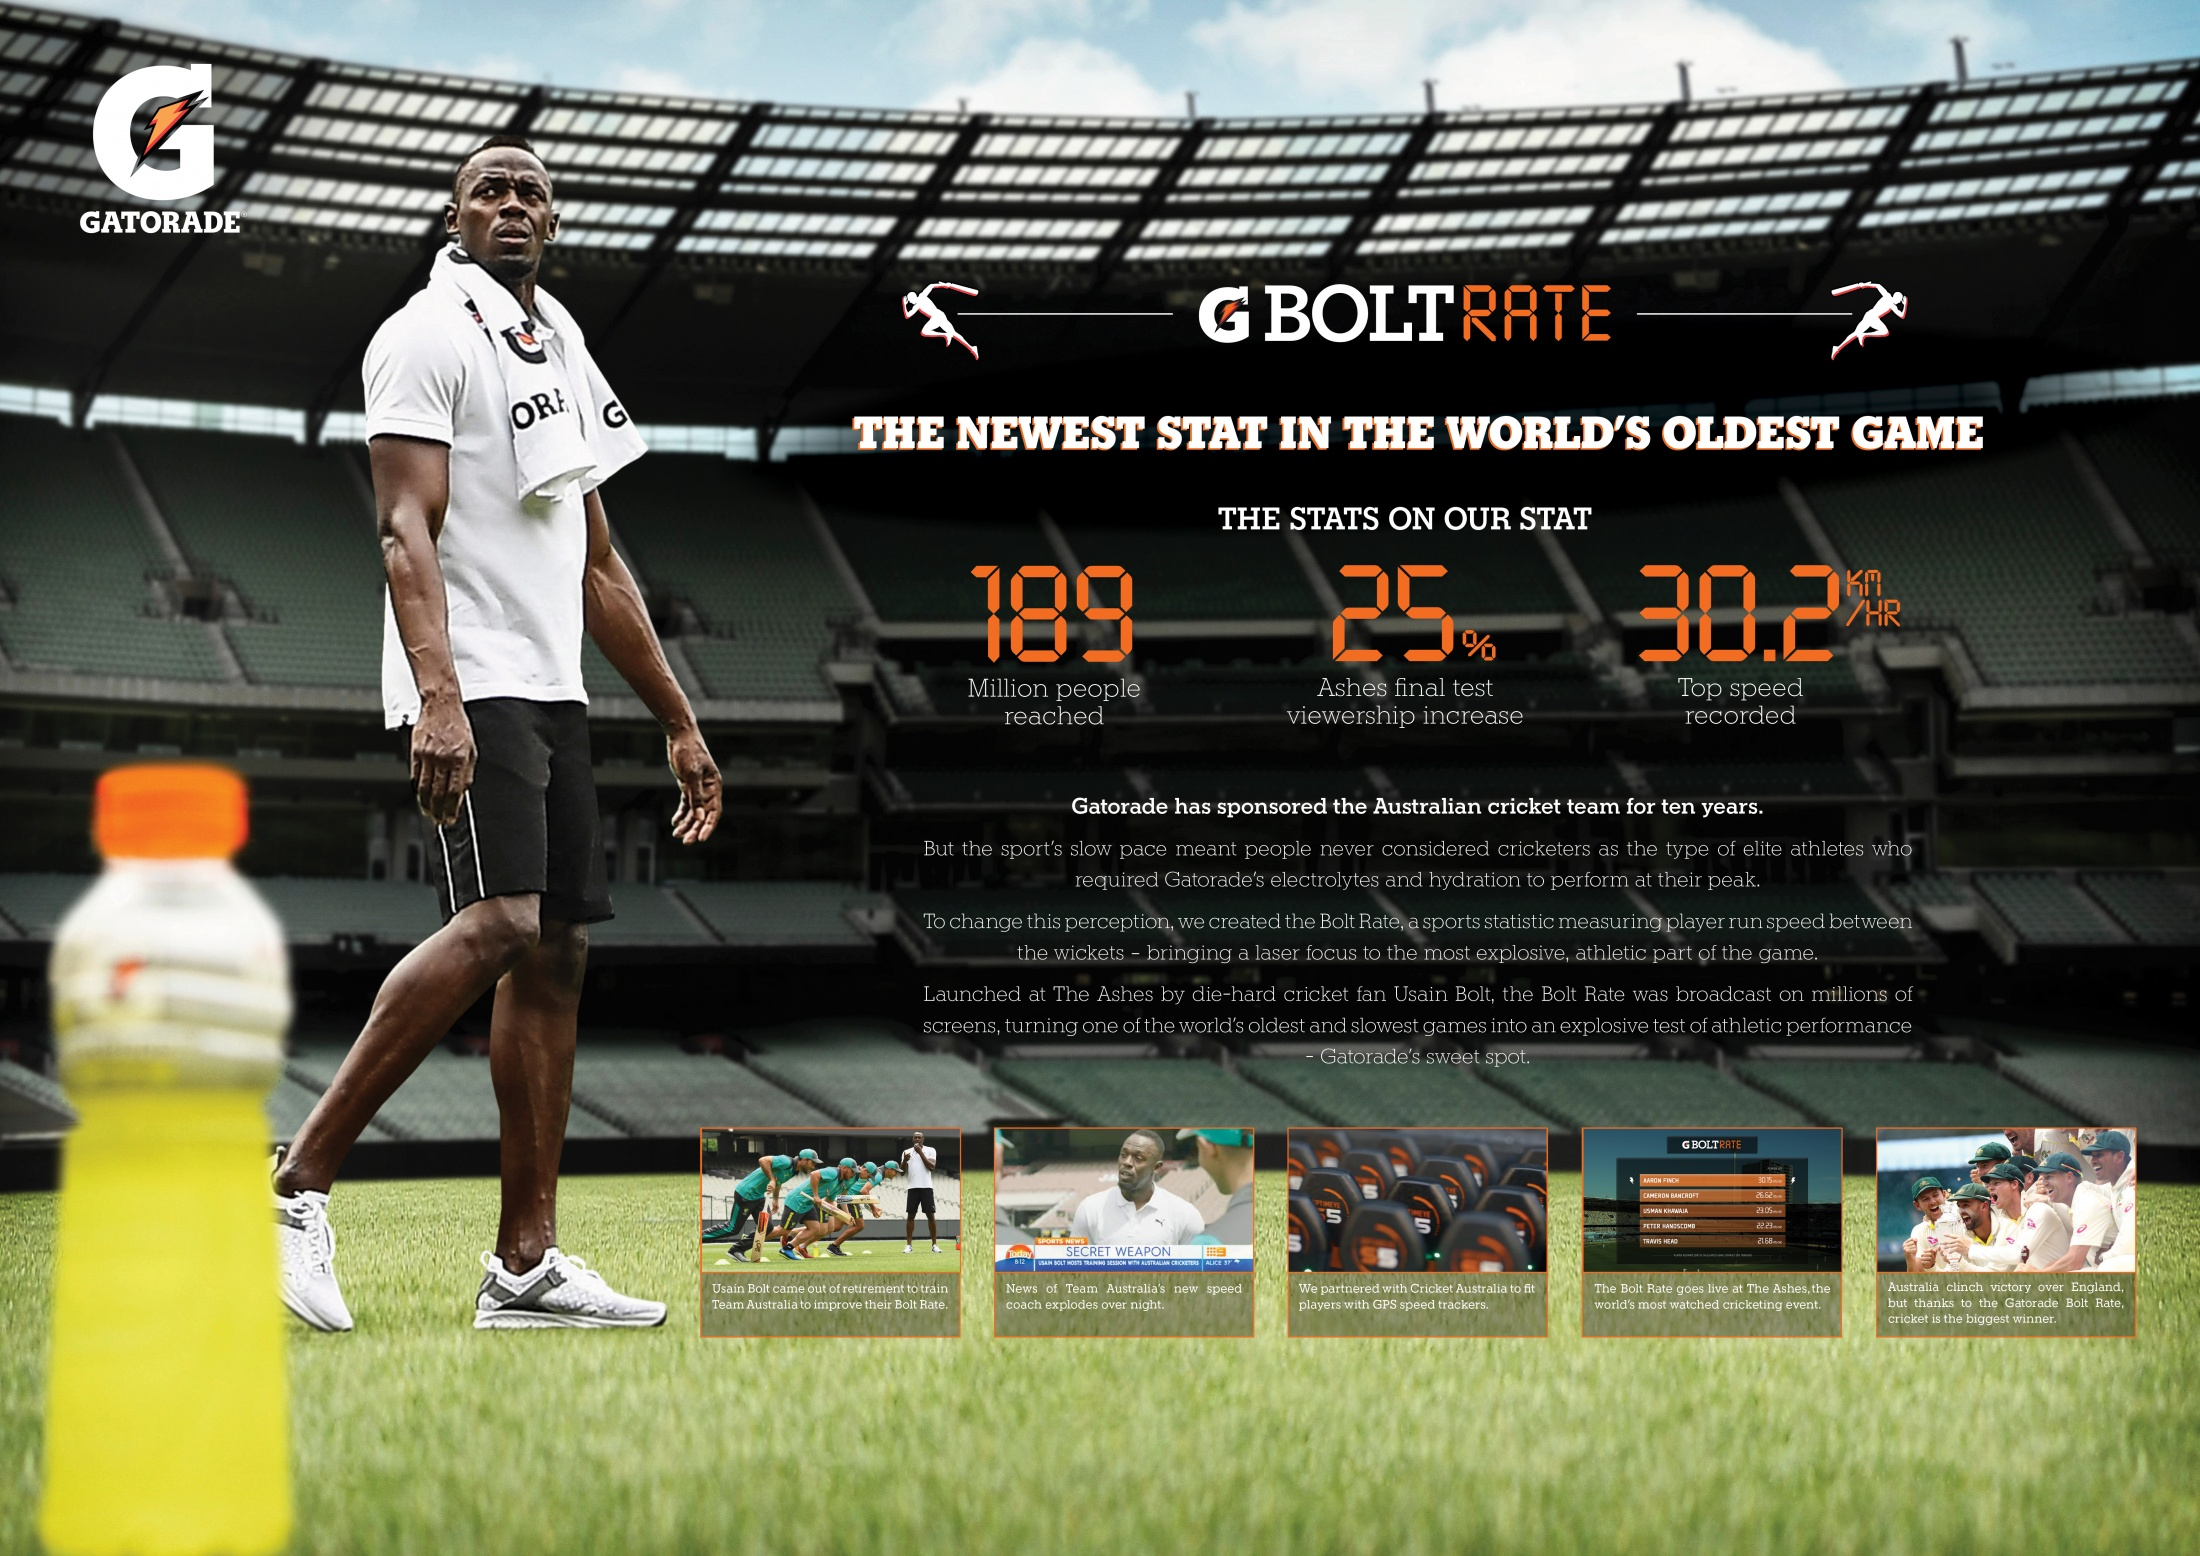 Image Media for Bolt Rate